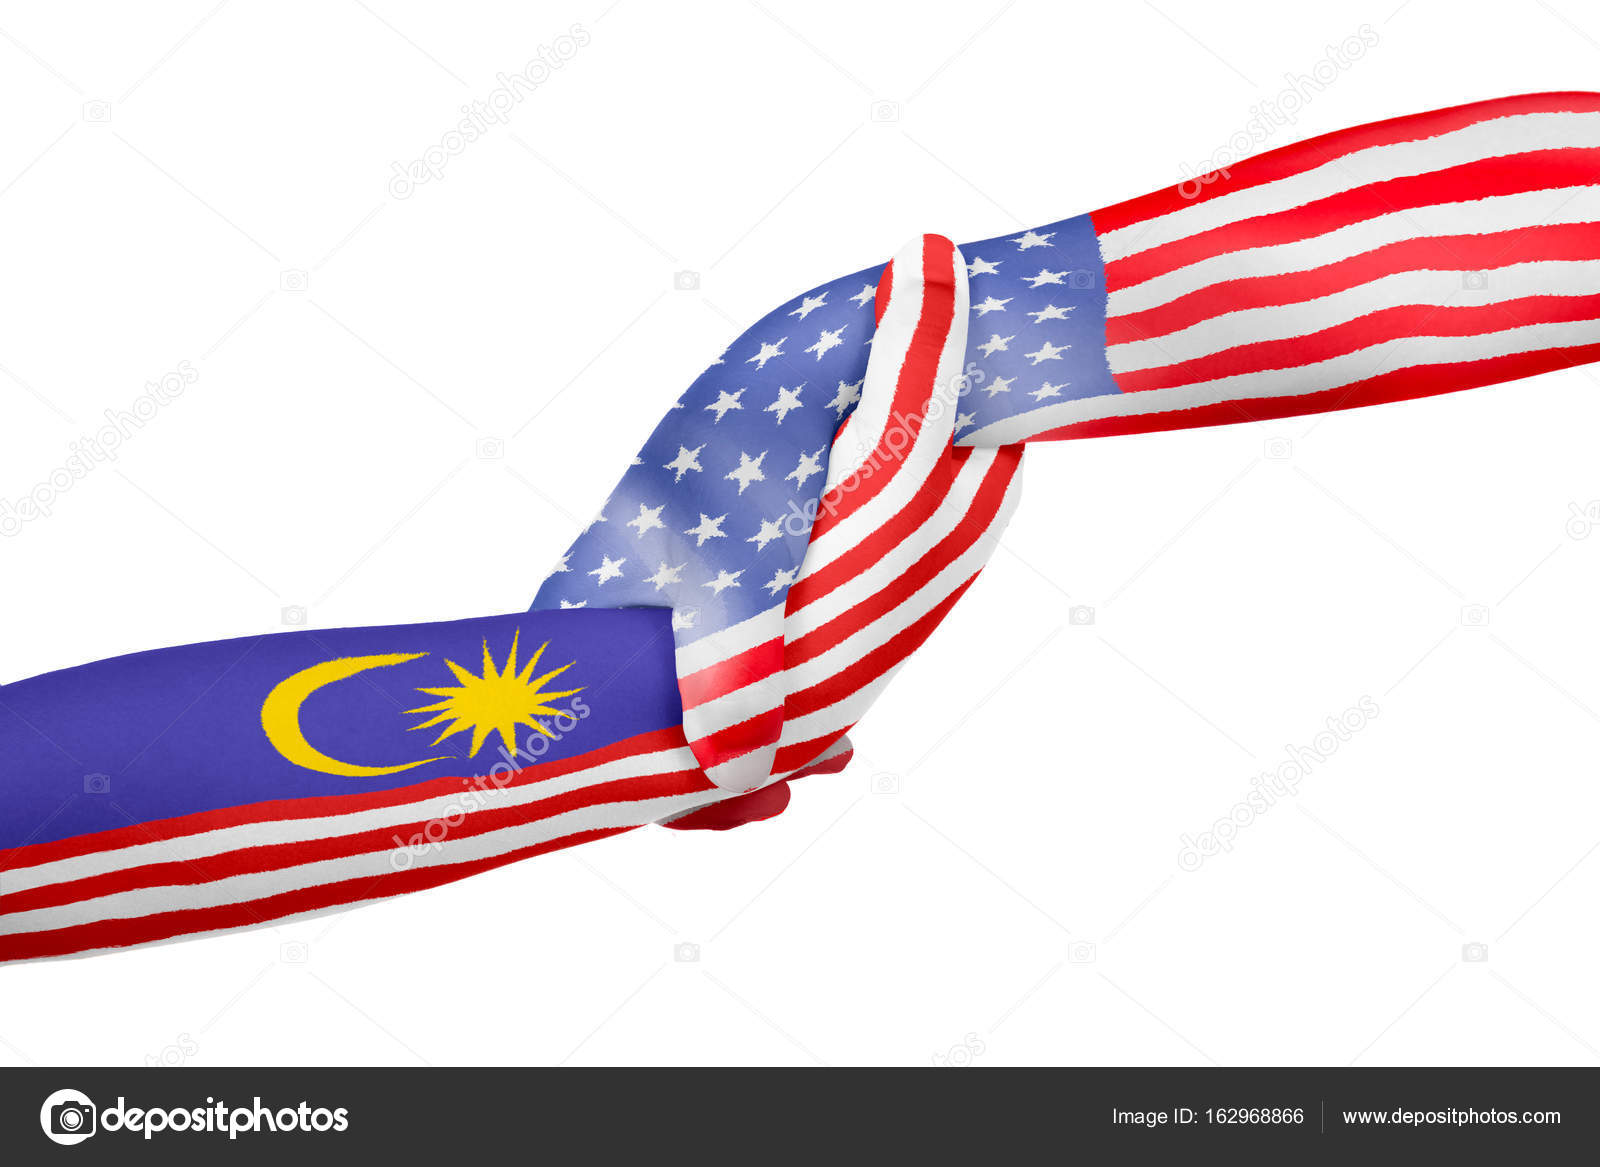 Helping Hands Of America >> Helping Hands Of United States Of America And Malaysia Stock Photo